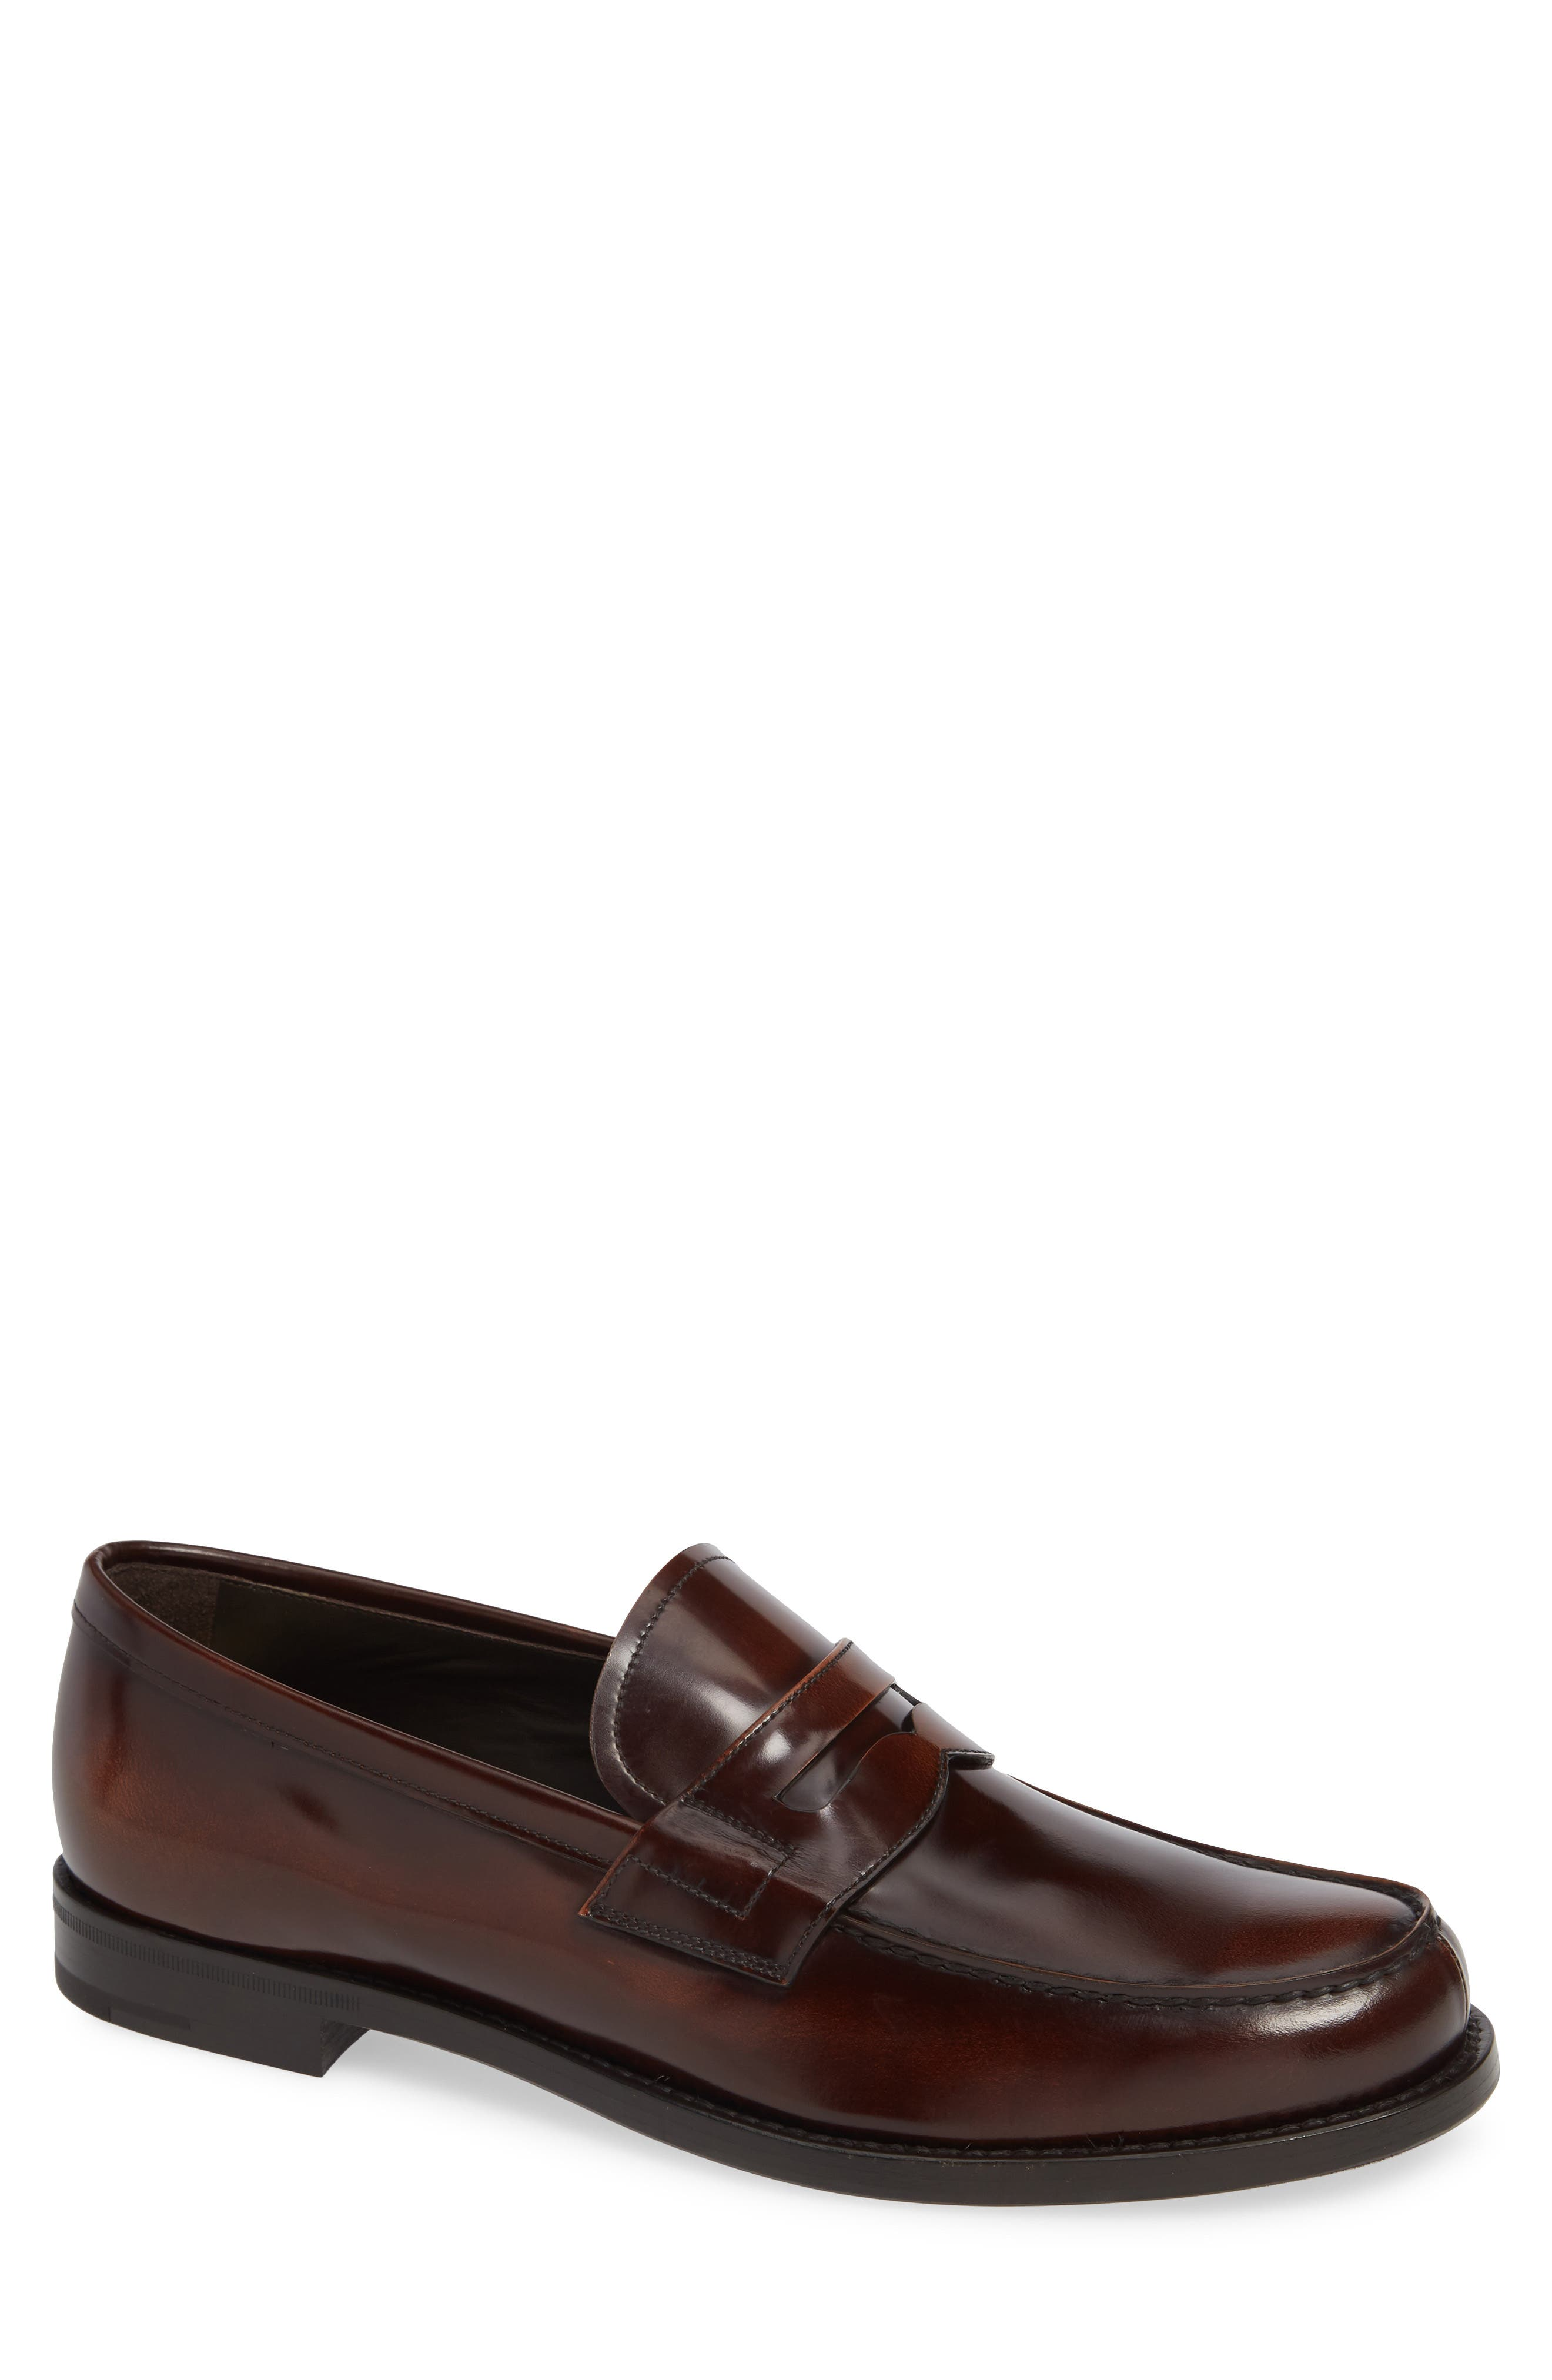 Penny Loafer,                             Main thumbnail 1, color,                             TOBACCO